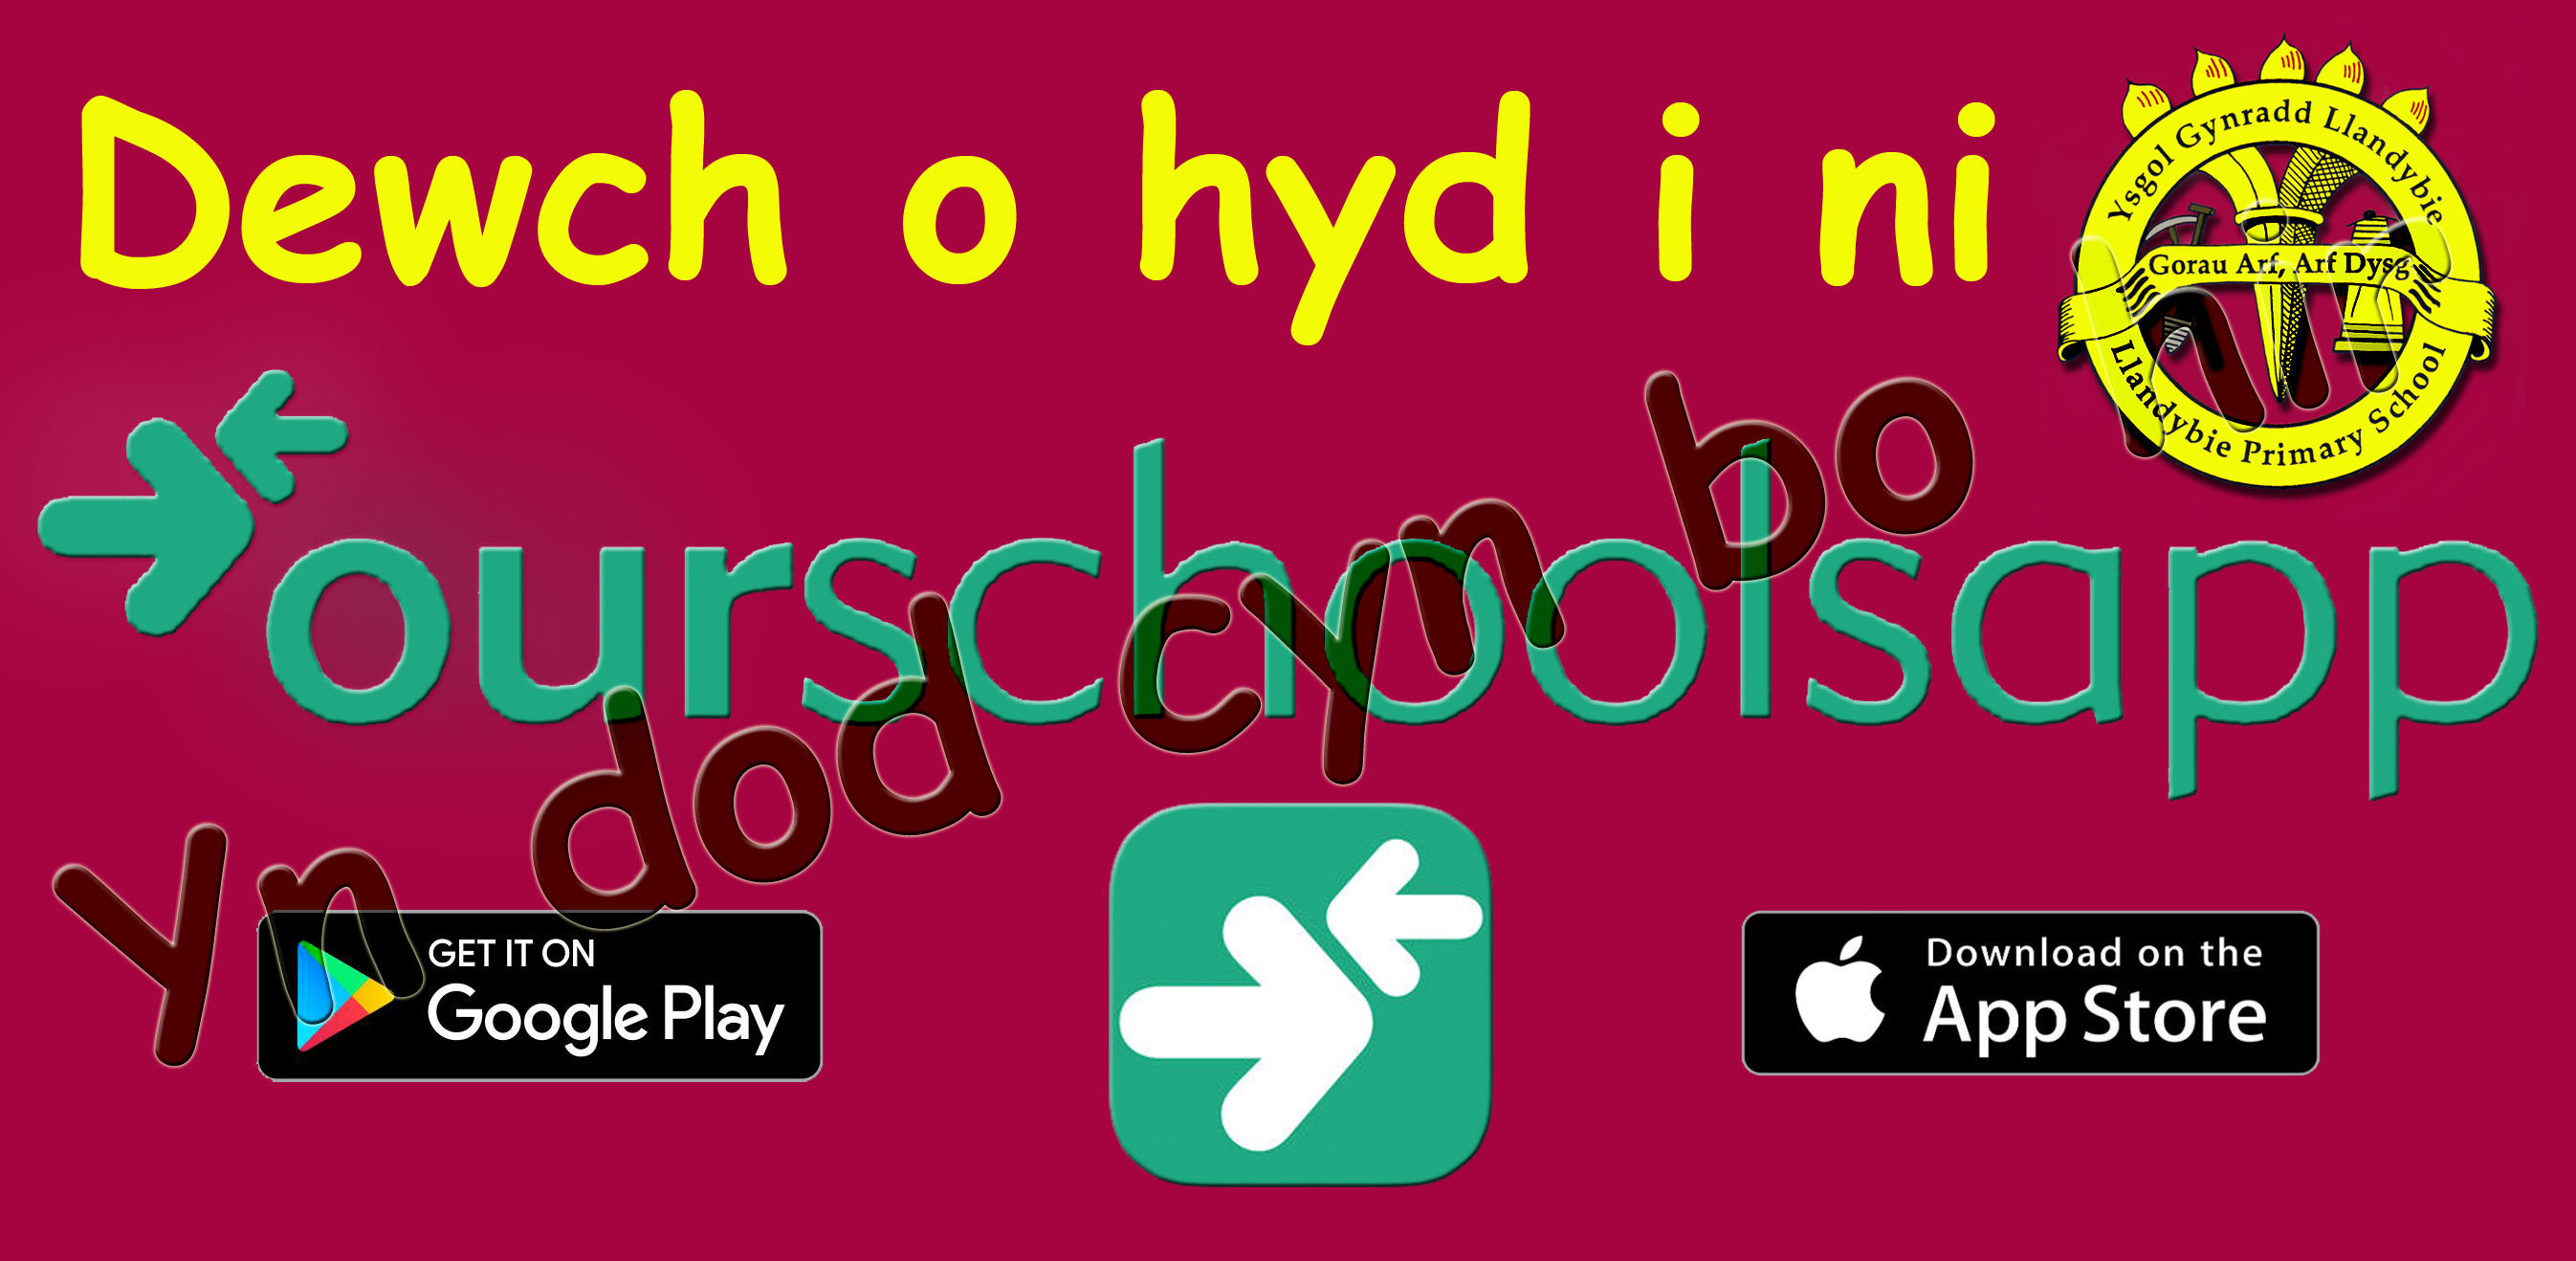 Our Schoolapp Banner Welsh Cyn Bo Hir